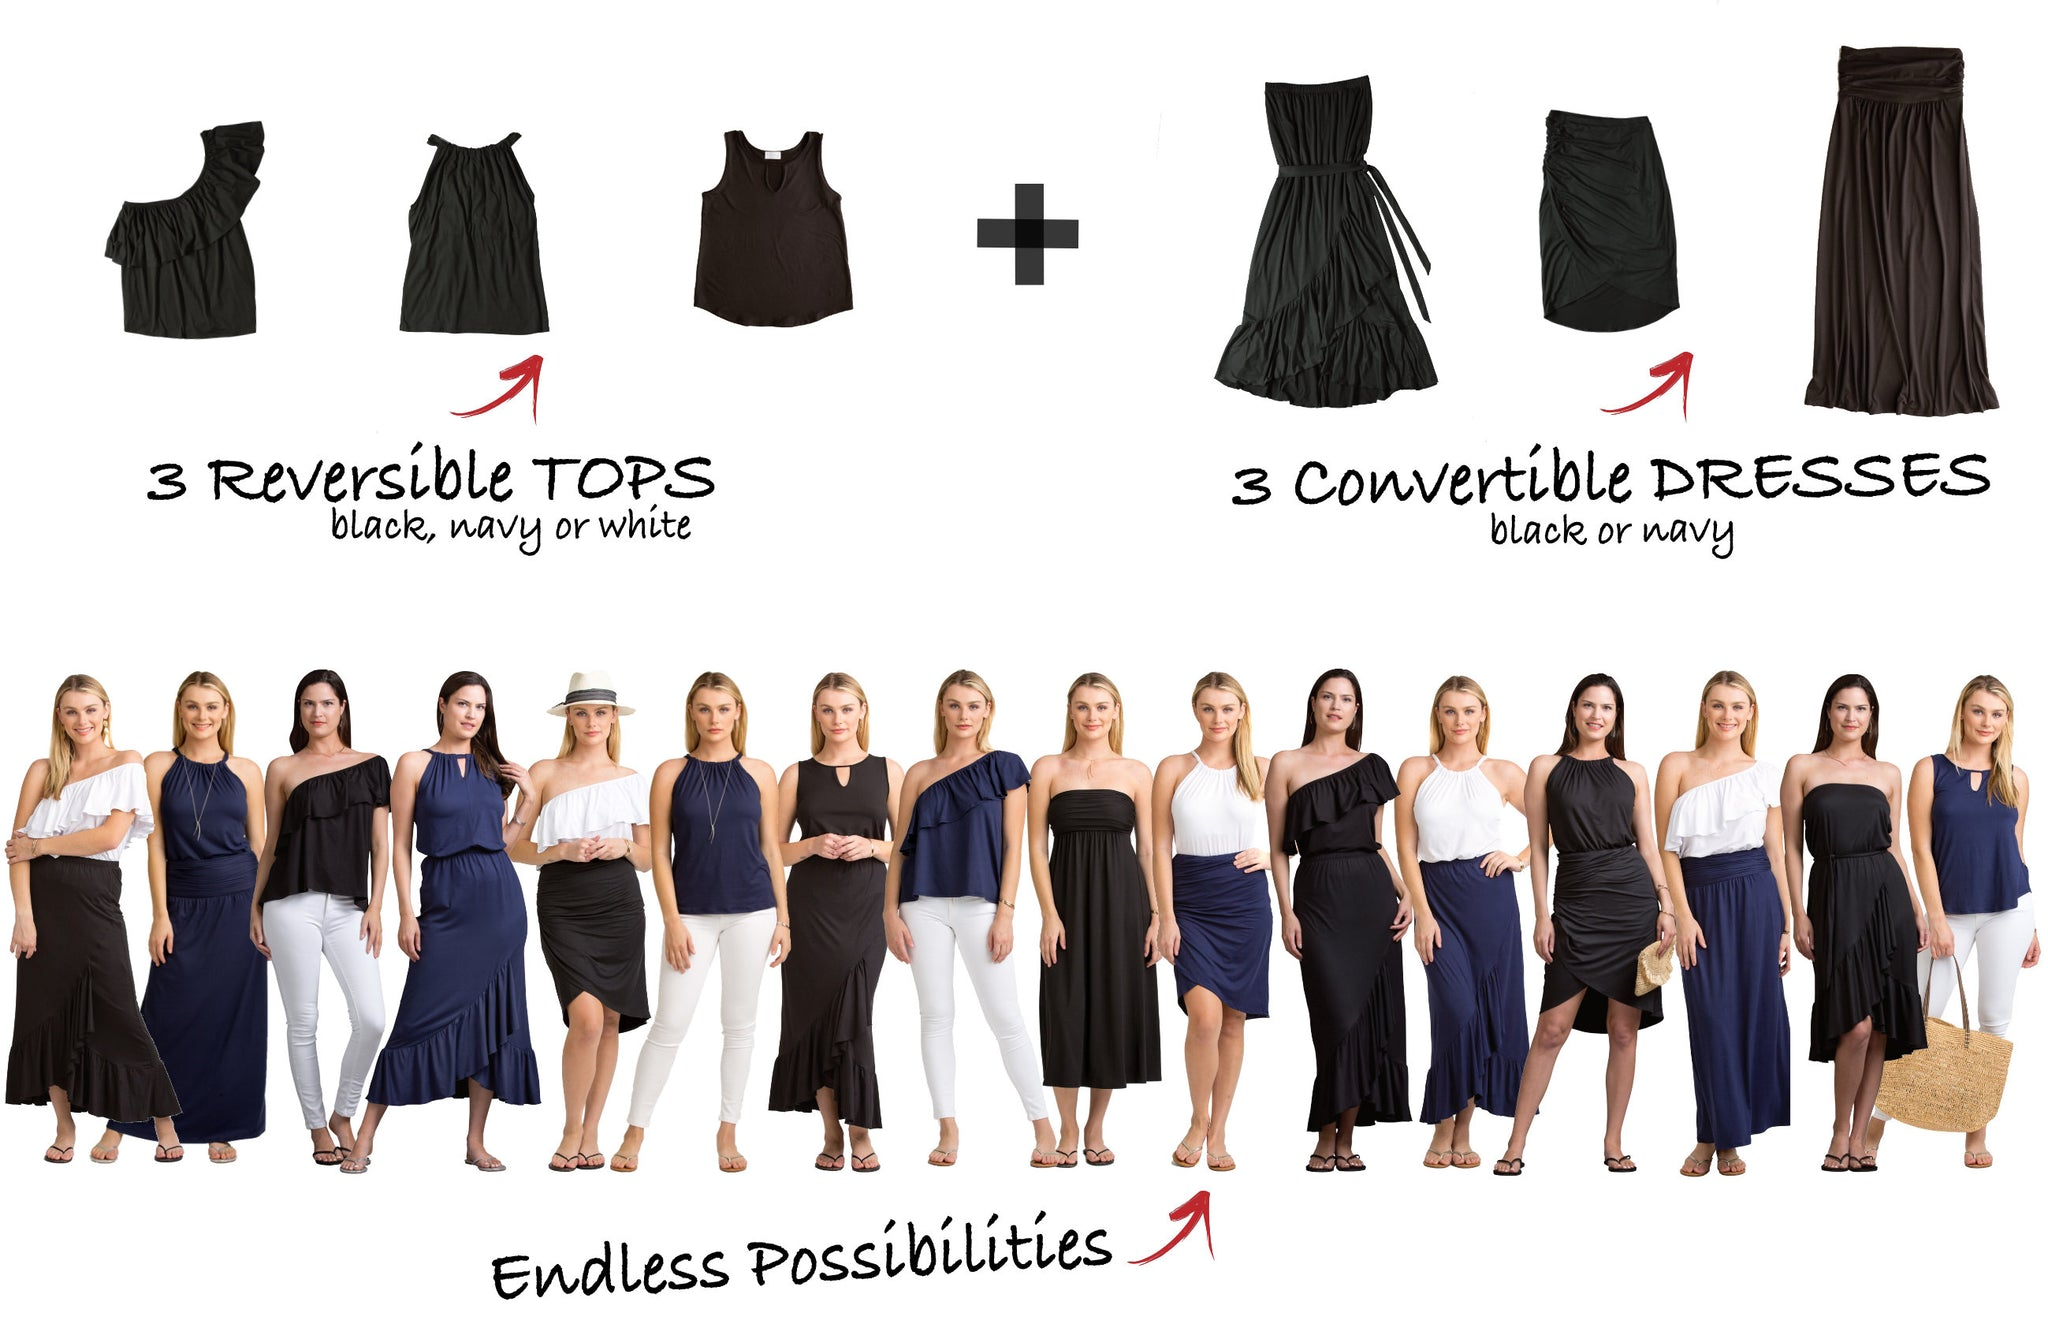 Vacay Versatiles 3 tops, 3 dresses, endless possibilities